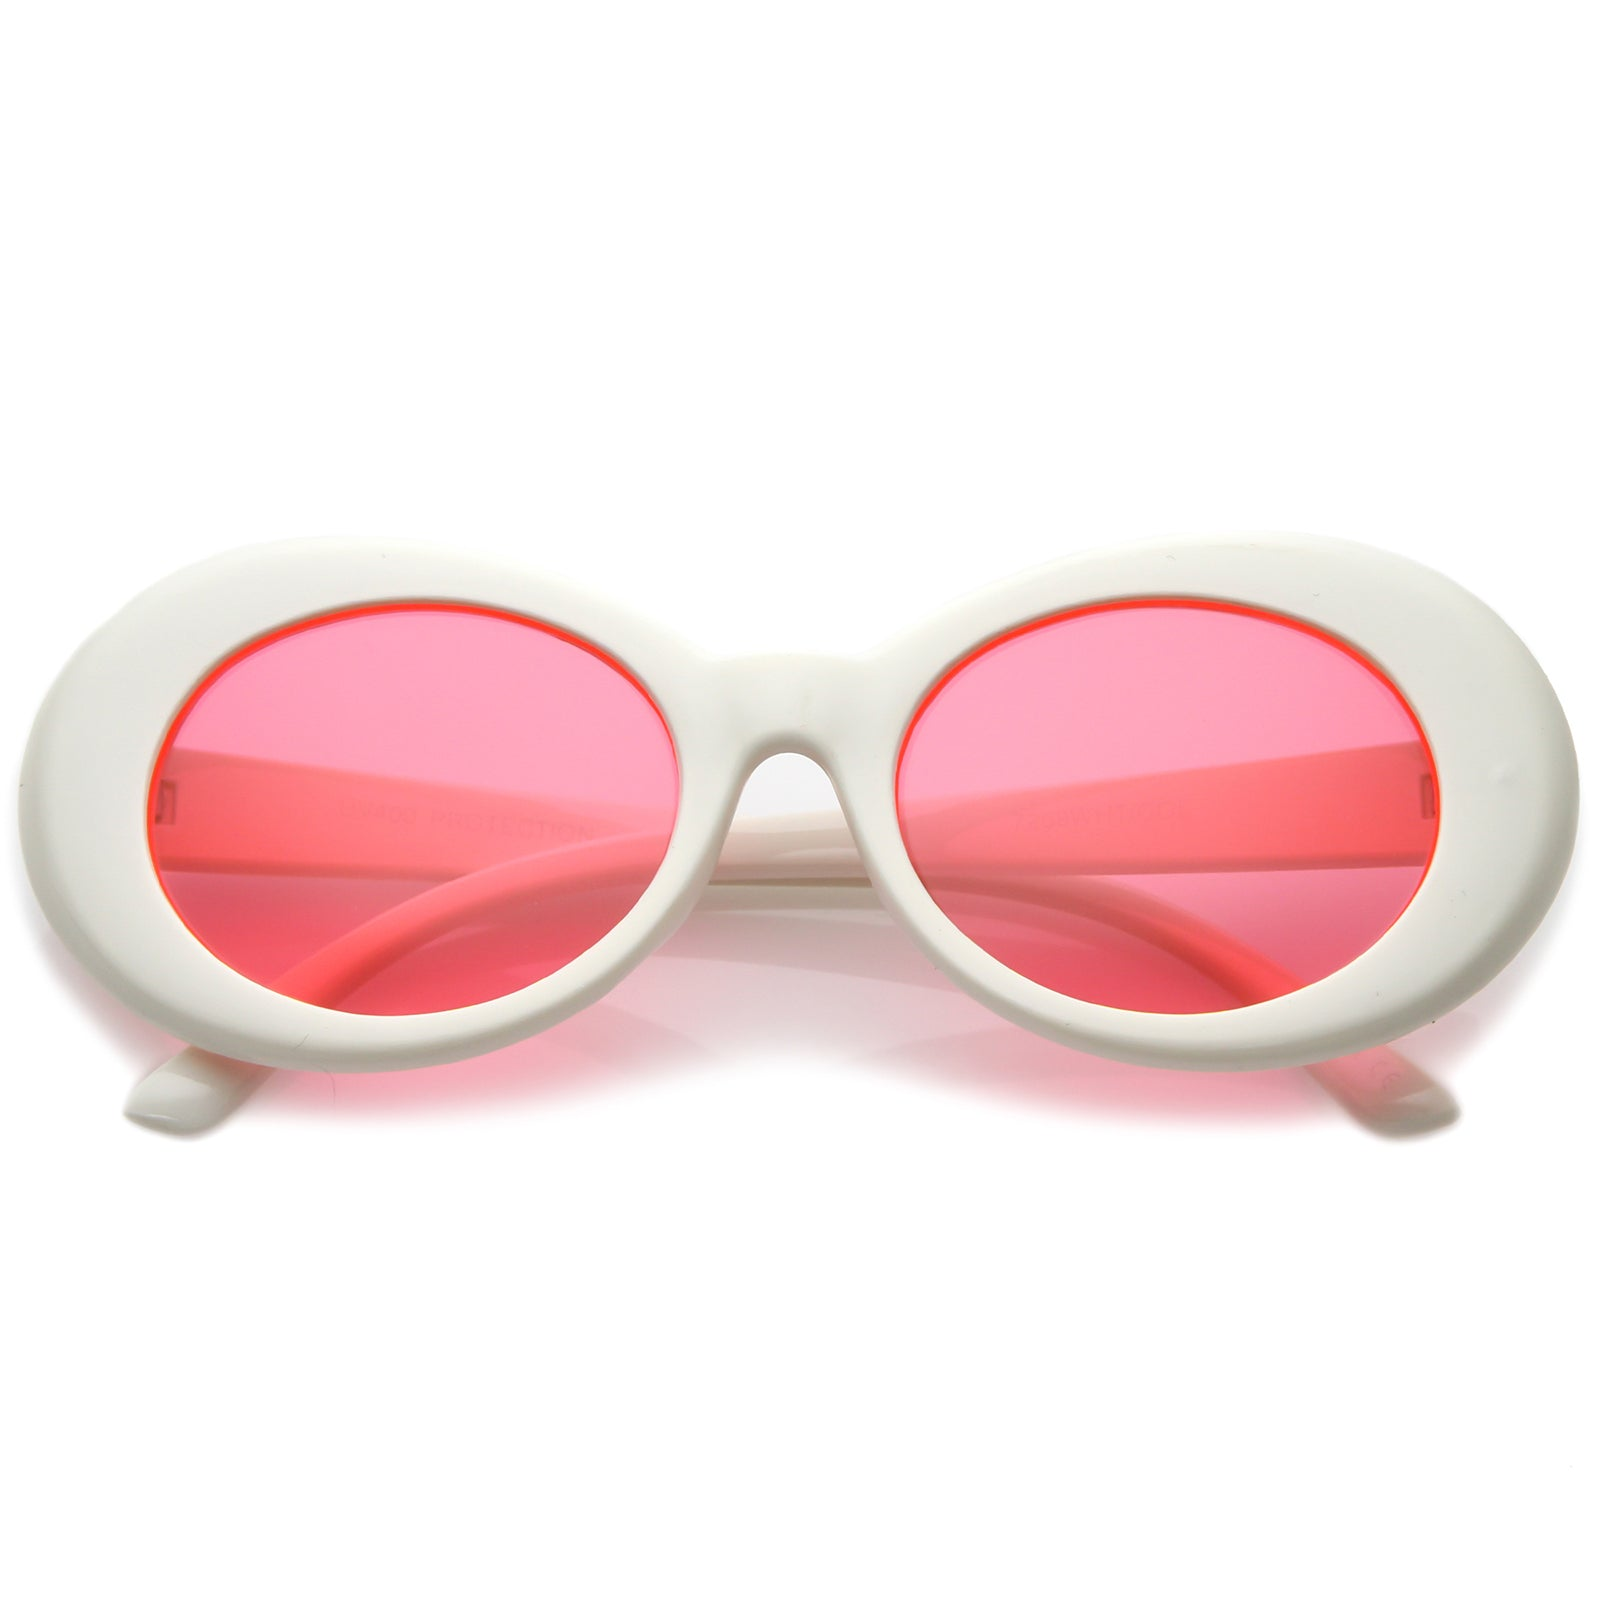 51715f9746b2 Retro White Oval Sunglasses With Tapered Arms Colored Round Lens ...